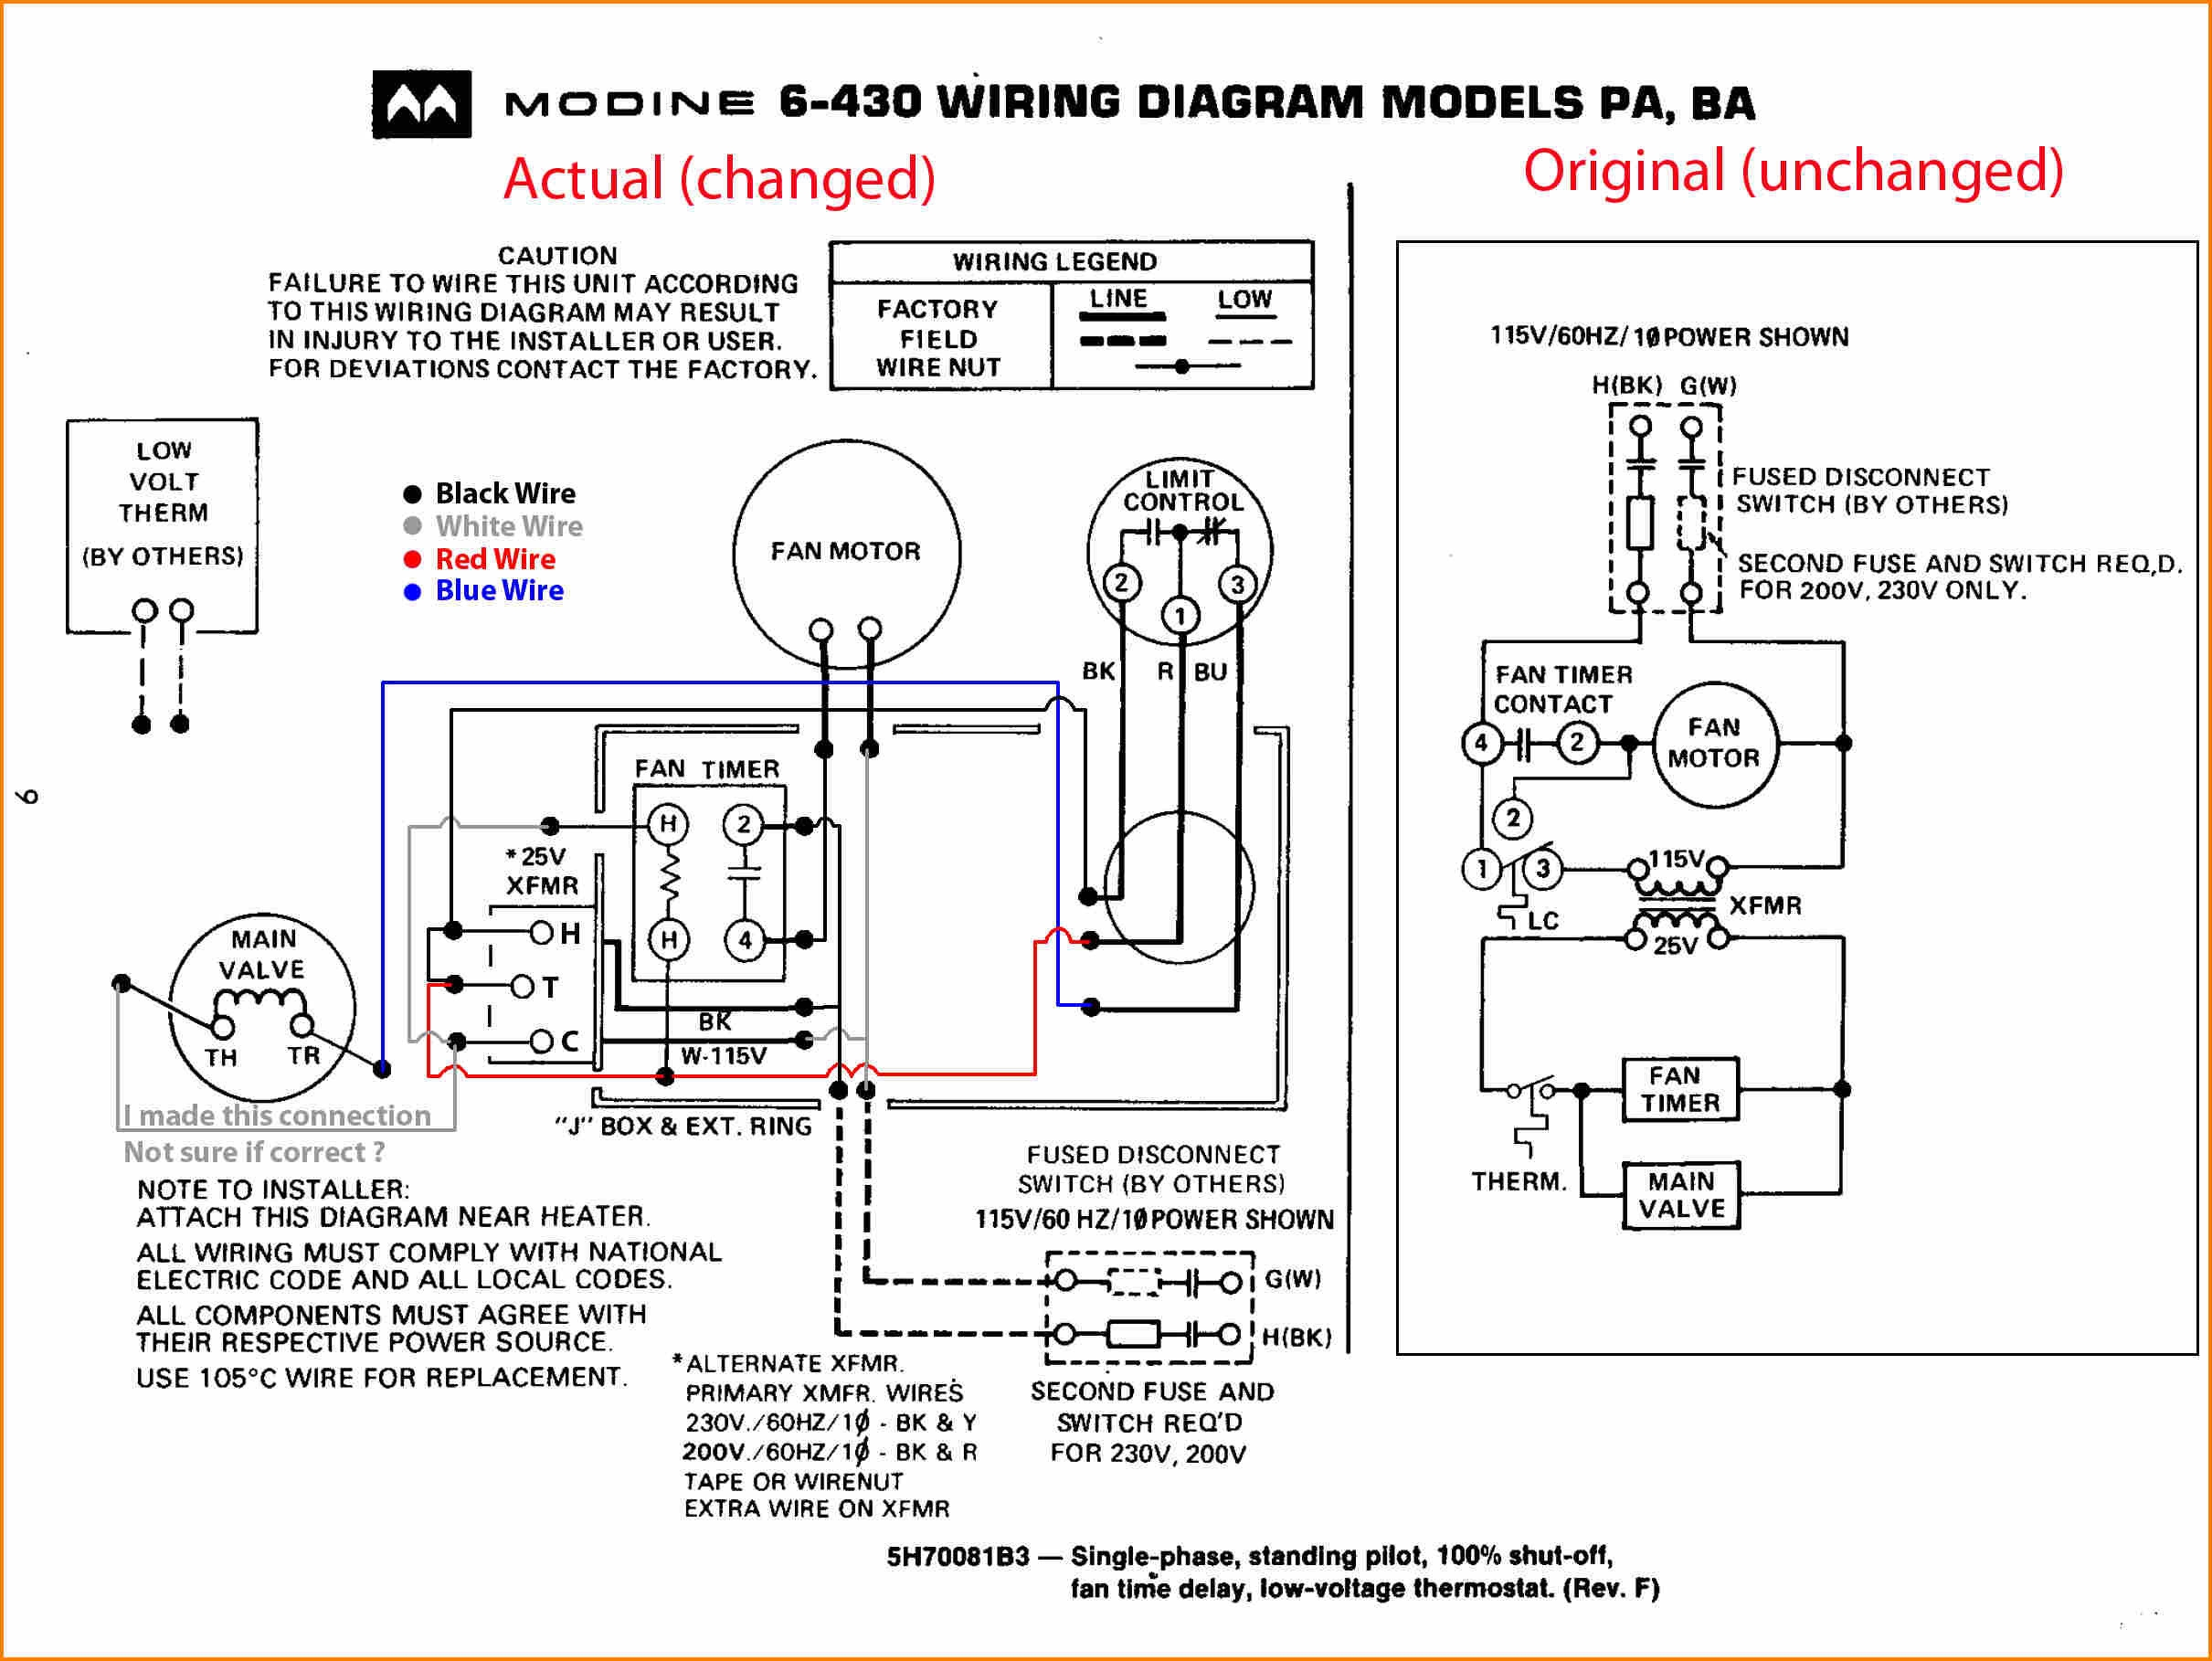 williams wall furnace wiring diagram Collection-Gas Furnace thermocouple Wiring Diagram Refrence Hanging Furnace Wiring Diagram Janitrol Automotive Block Diagram 2-n